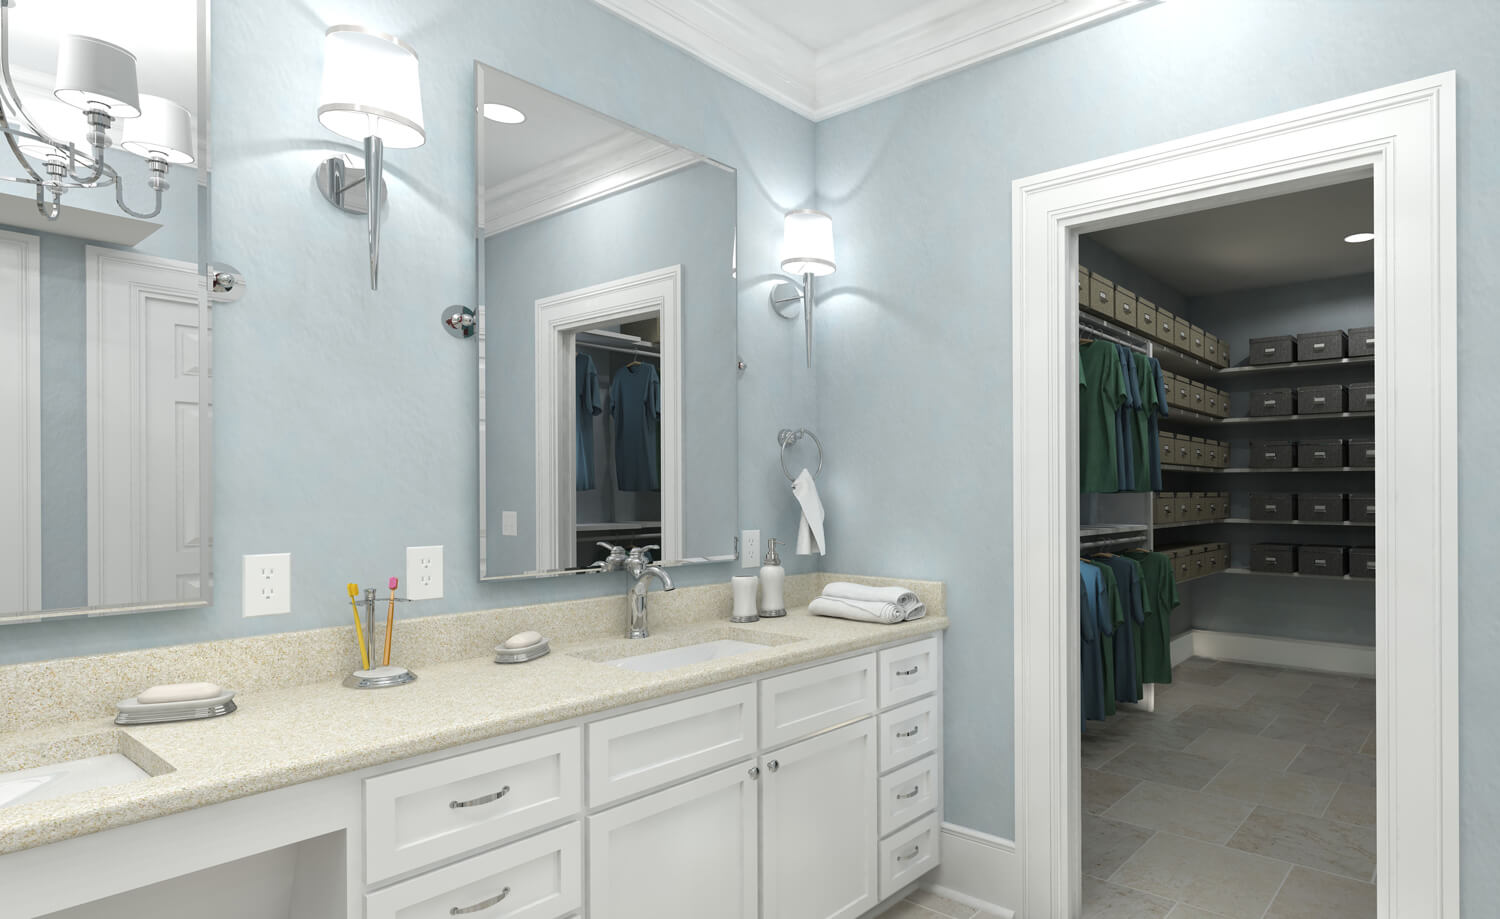 Designed by Foshee Architecture – Private Residence 3 Vanity and Closet